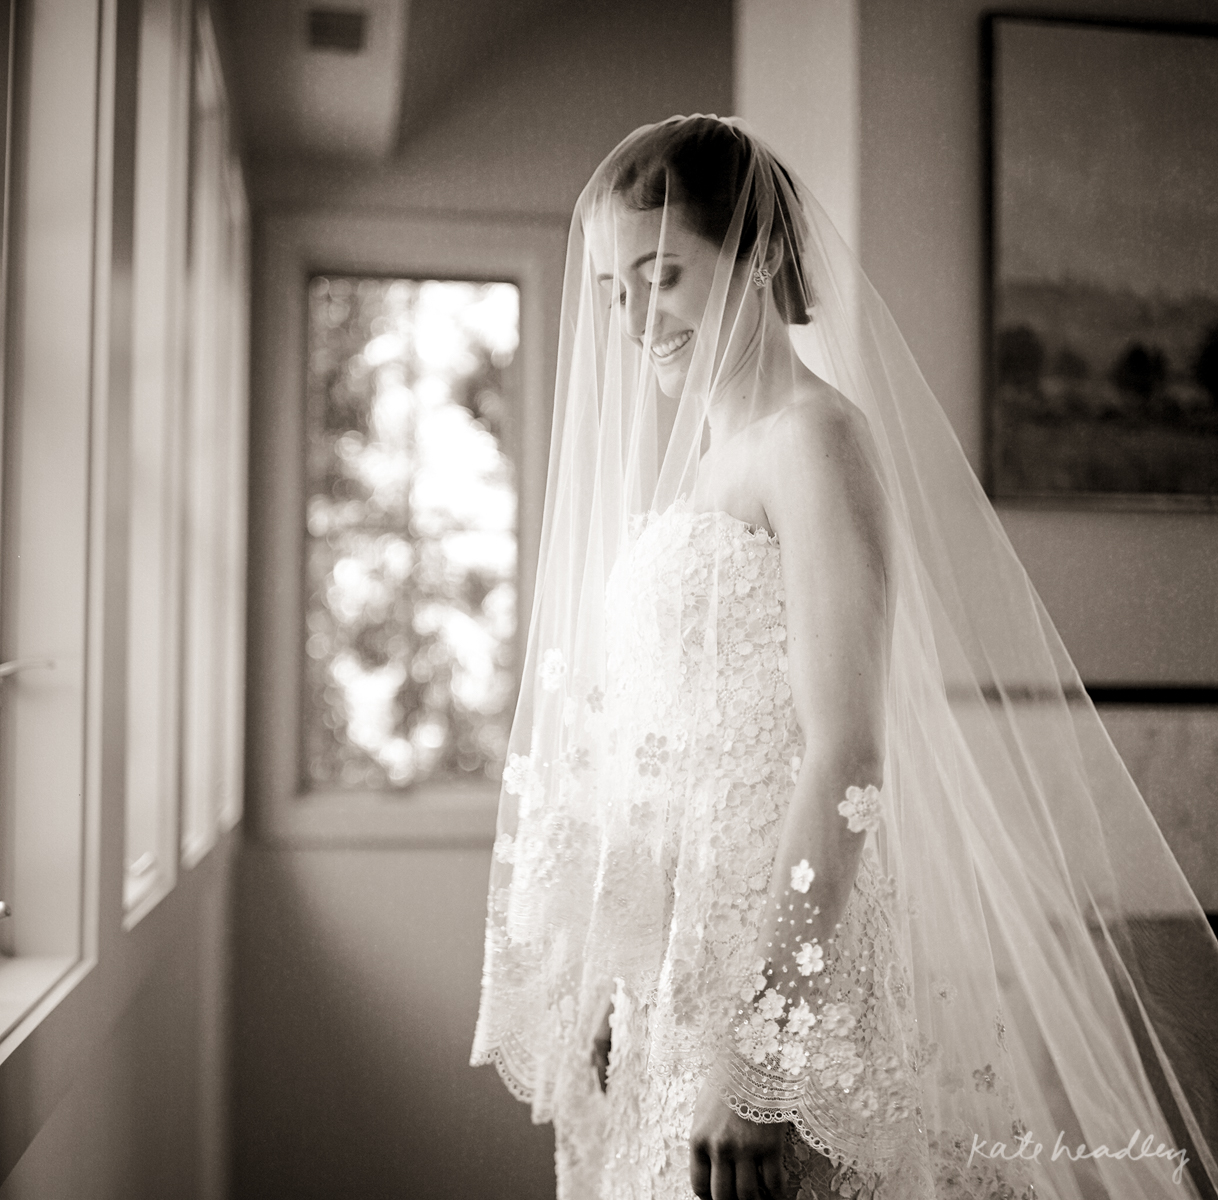 001_kateheadley_baltimore_wedding.jpg